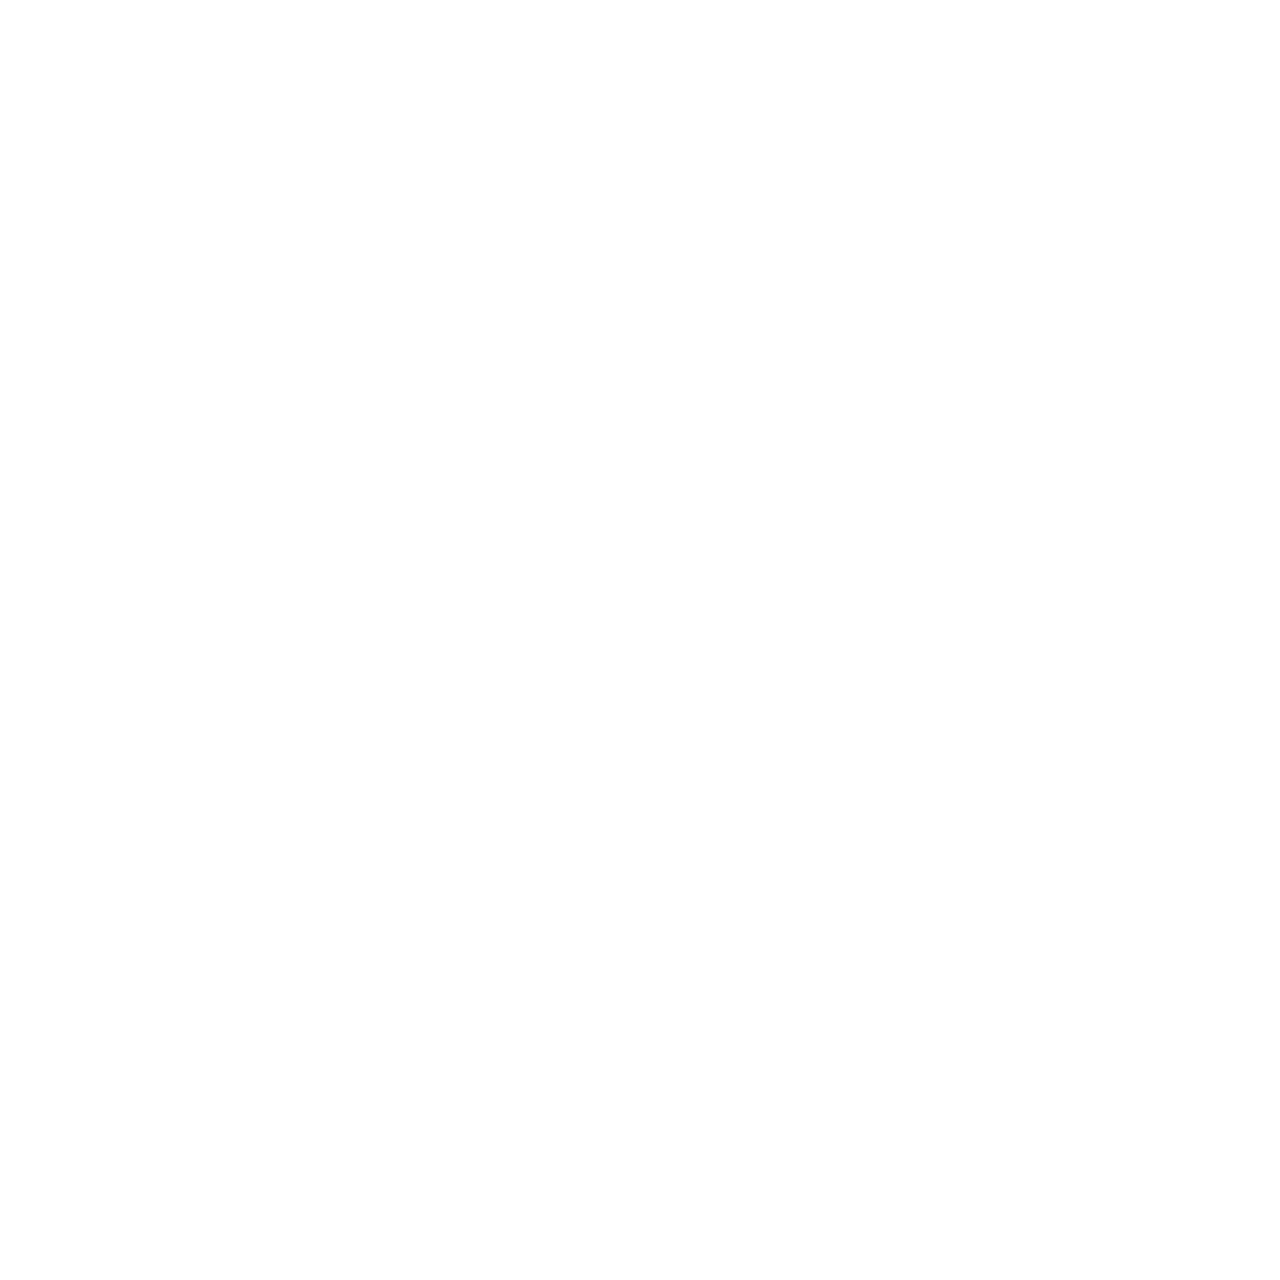 we are a professional full service marketing agency